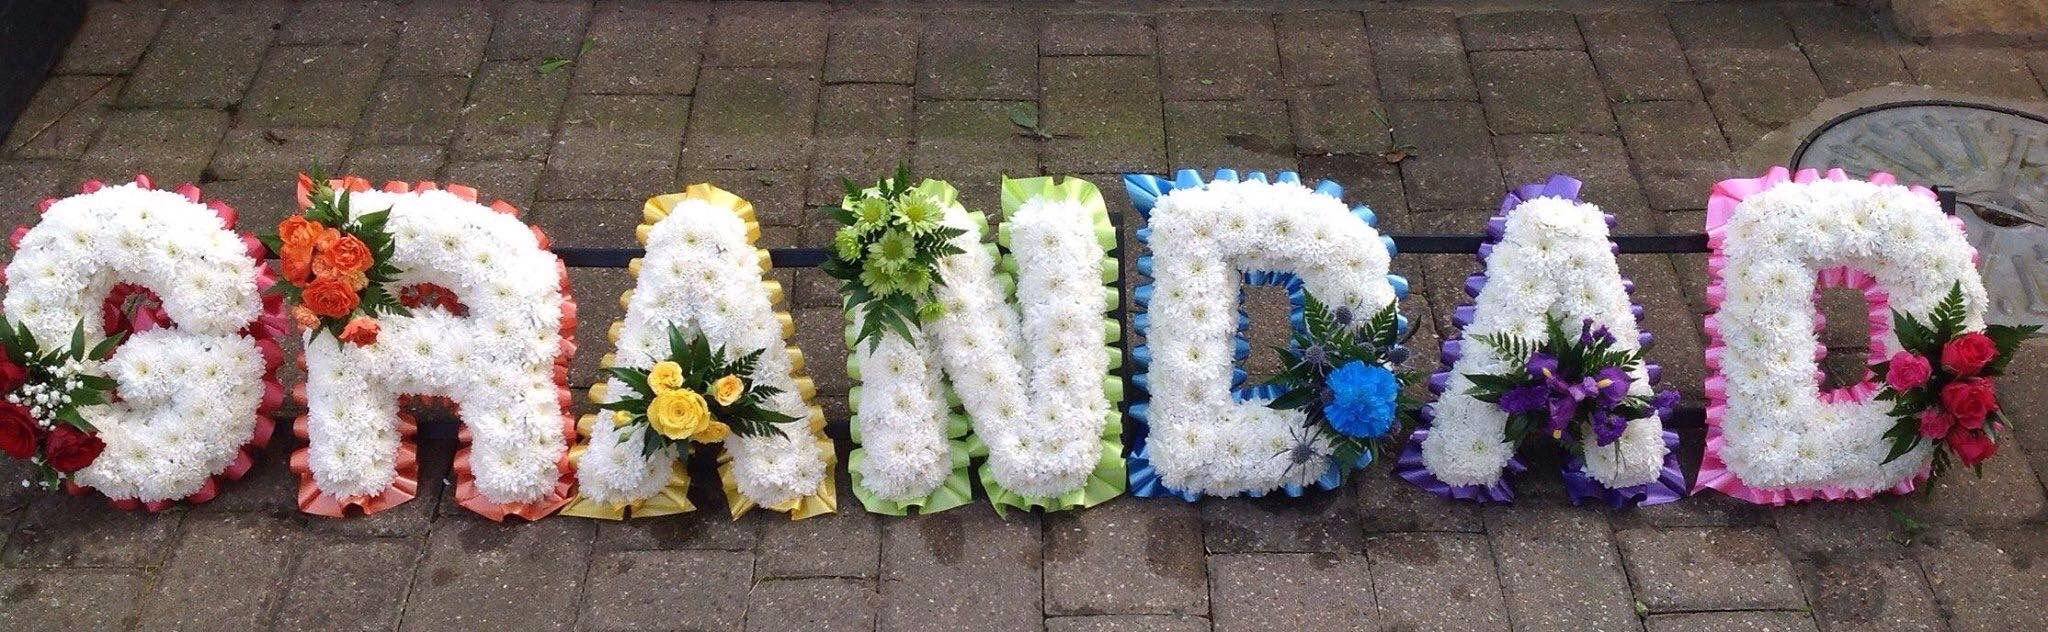 Rainbow grandad funeral flower tribute my work pinterest rainbow grandad funeral flower tribute izmirmasajfo